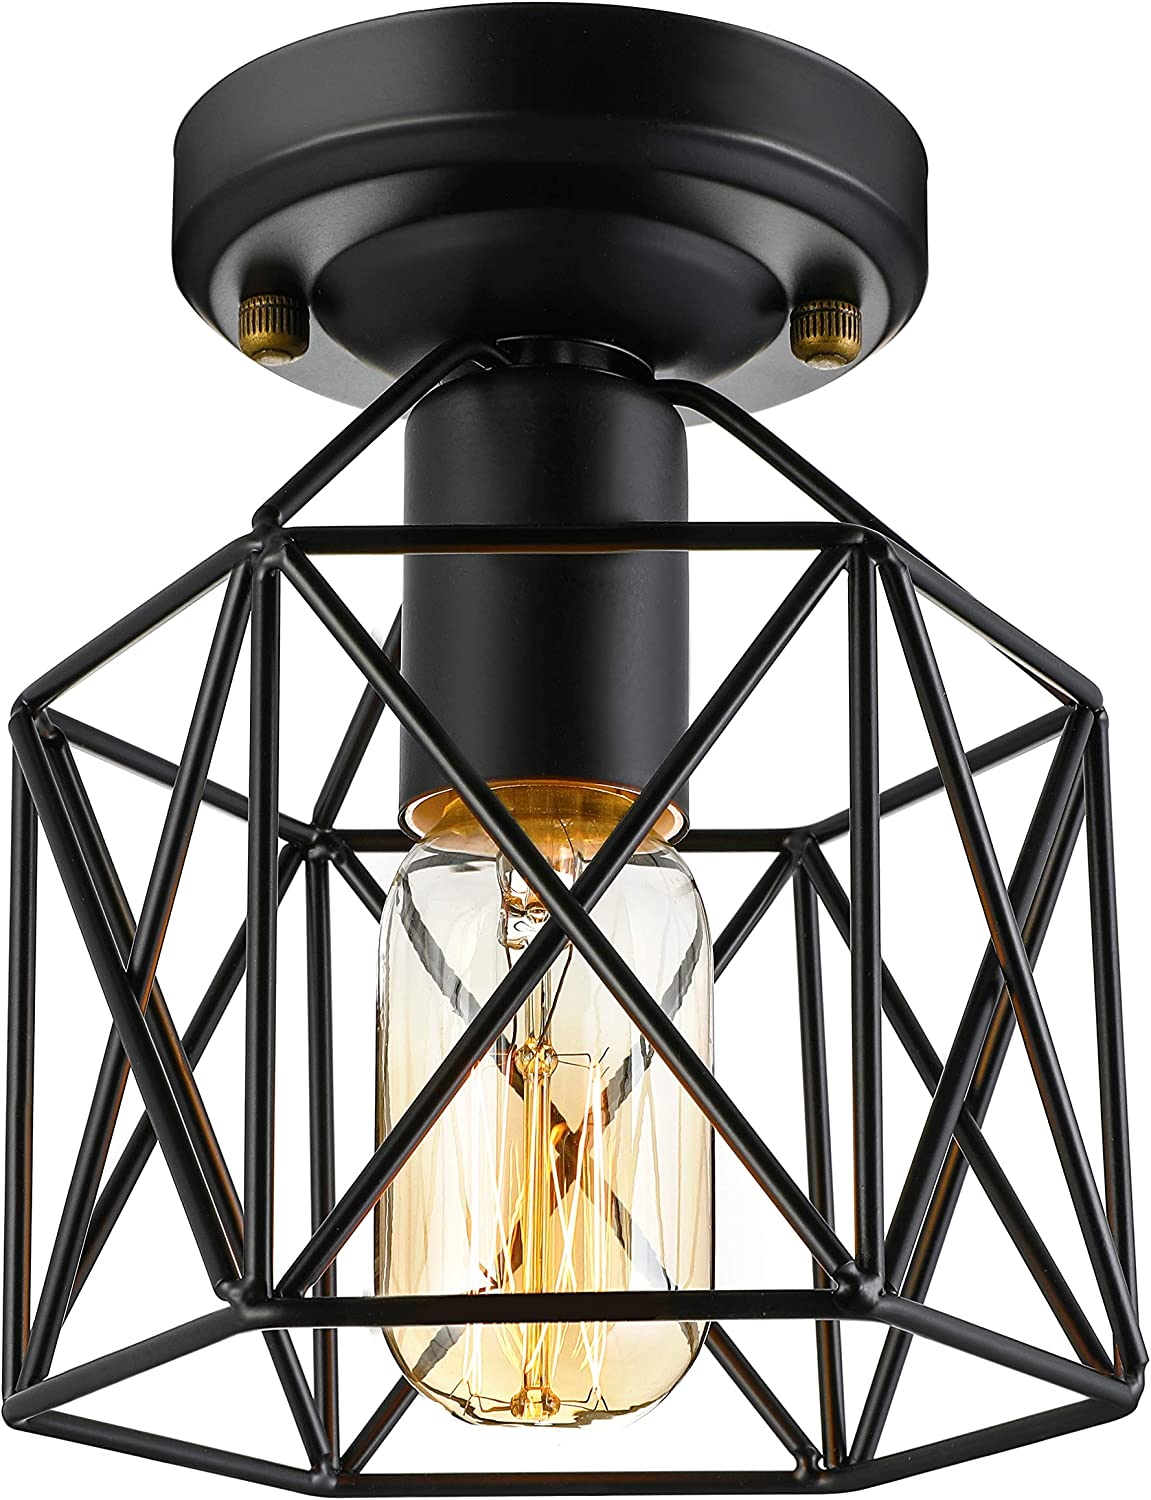 KWOKING Lighting Vintage semi Flush Mount Ceiling Light Industrial Lighting with Square cage Shade 1 Light Edison Bulb Indoor Hanging Lights for Entry Farmhouse Hallway Black Finish